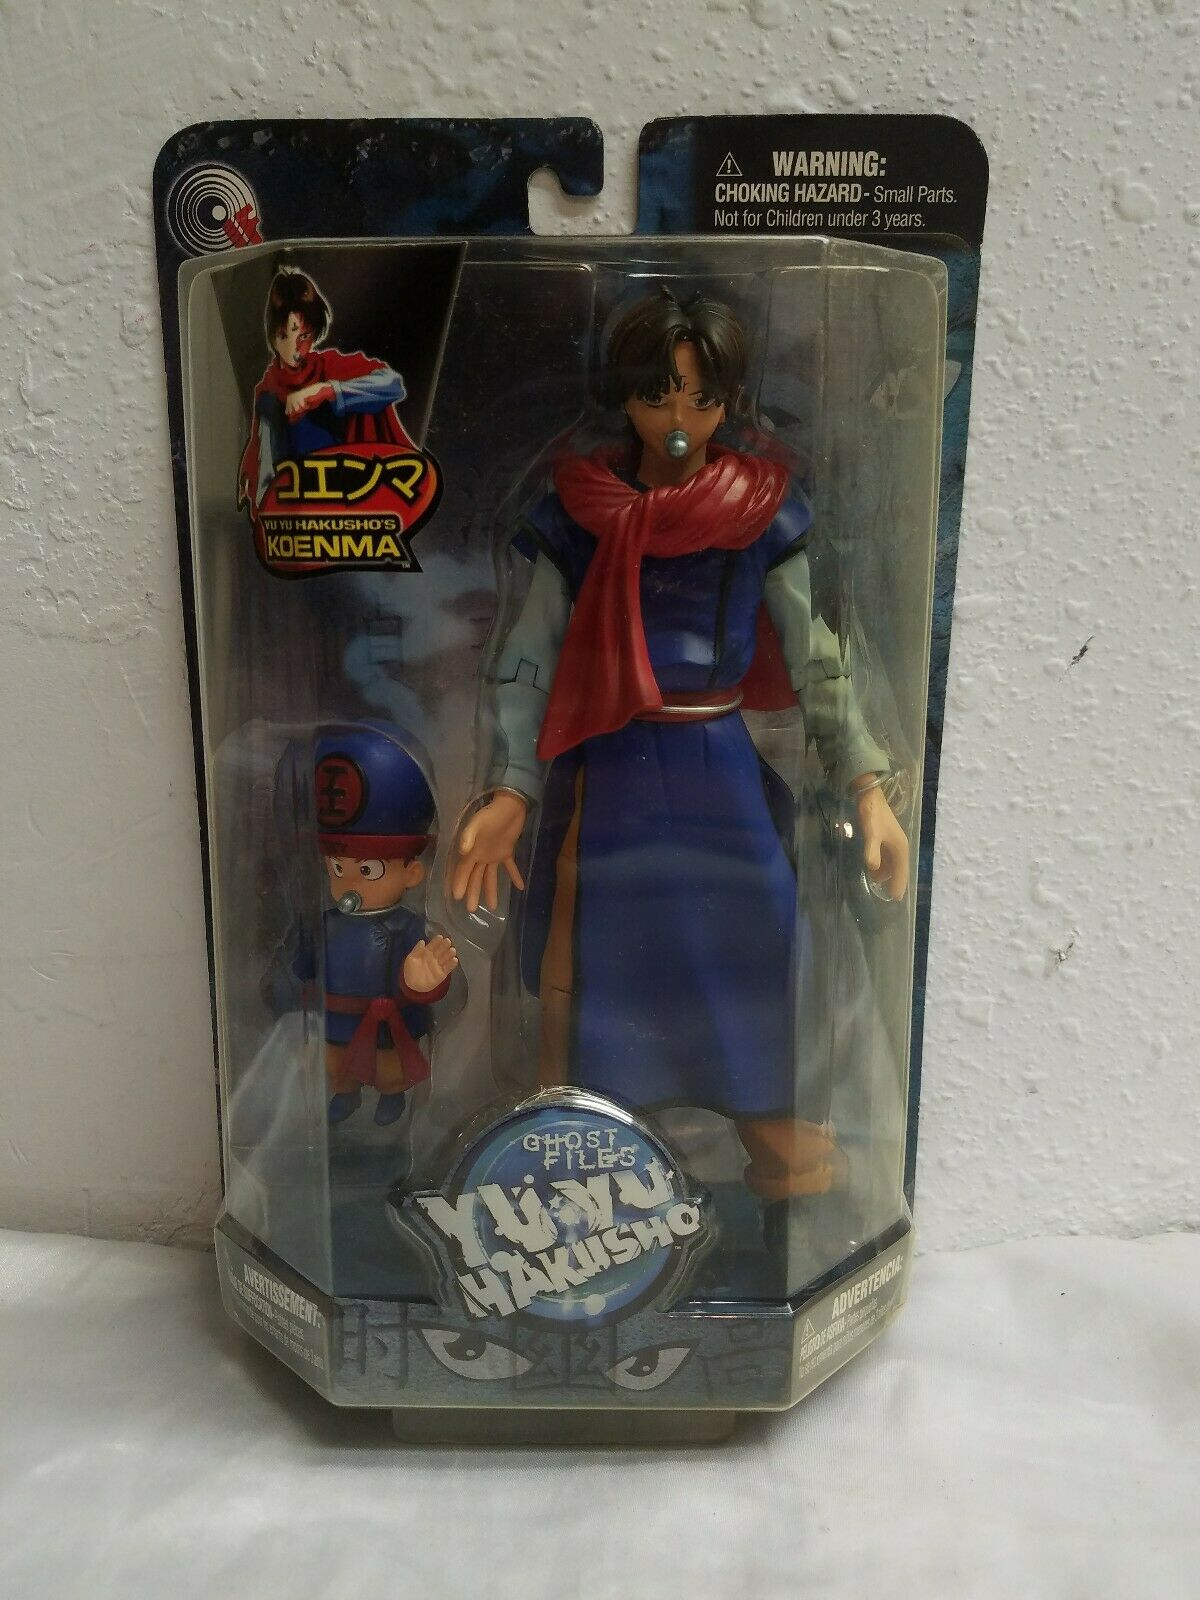 If-Labs KOENMA Ghost Files Yu Yu Hakusho Anime Action Action Action Figure Series 2 d0442b